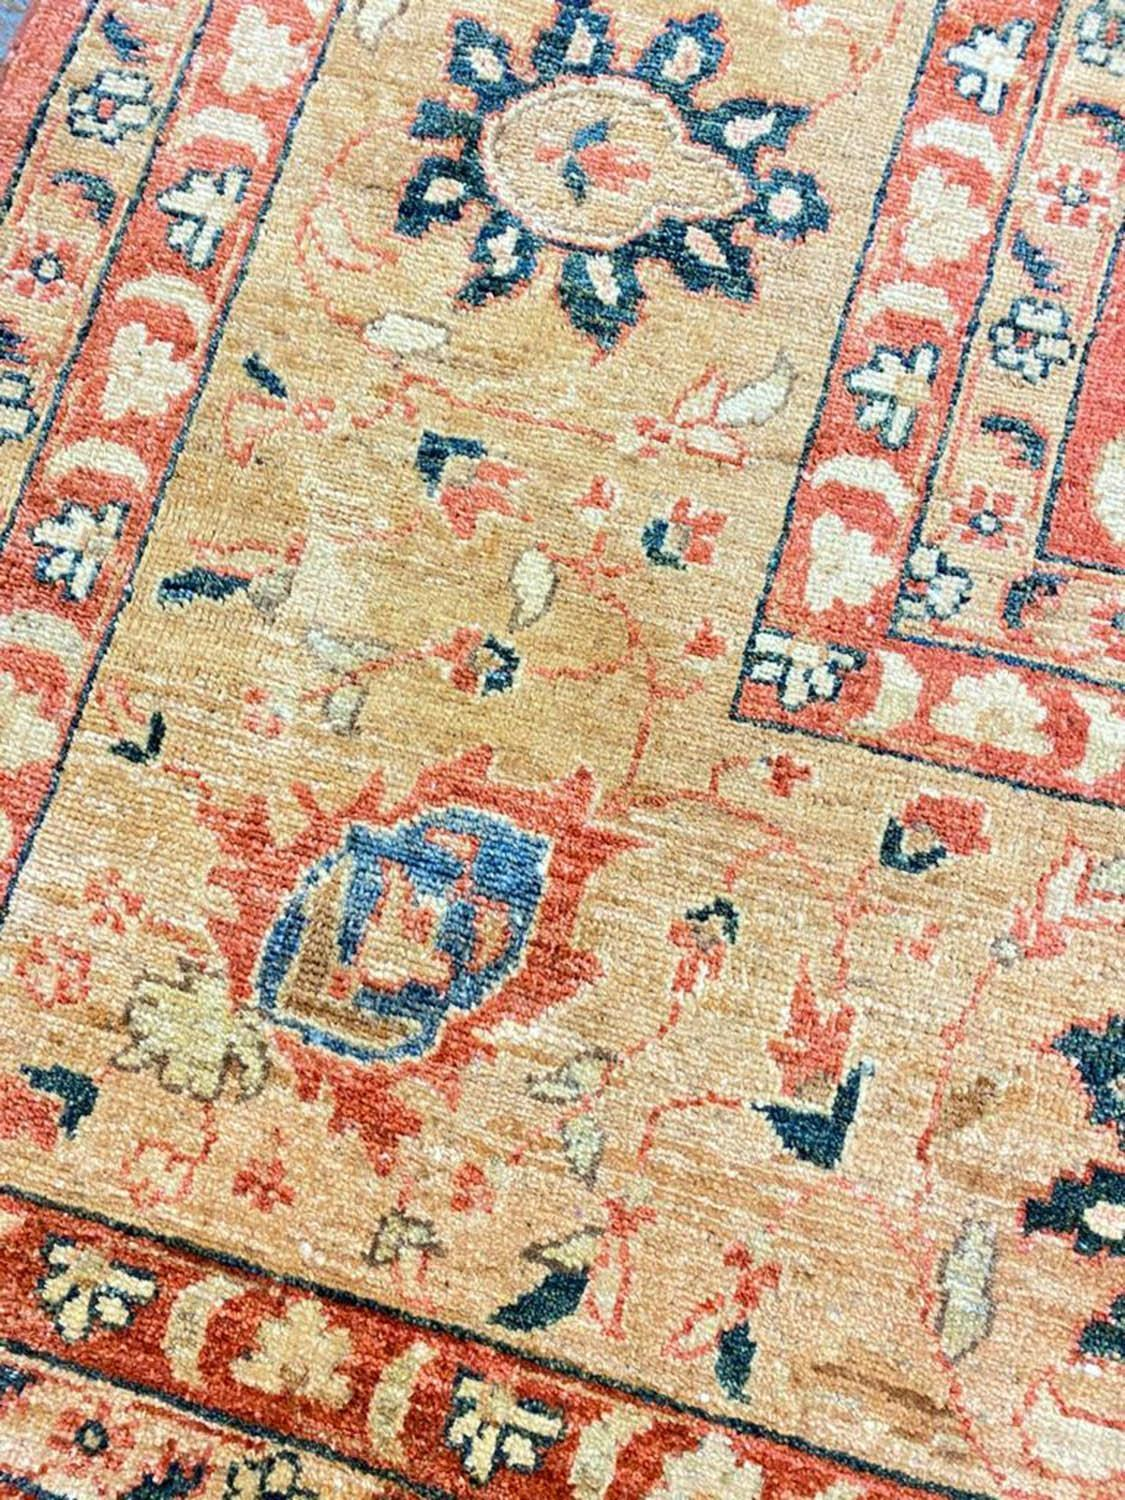 FINE BAKSHAISH DESIGN CARPET, 371cm x 273cm. - Image 3 of 5